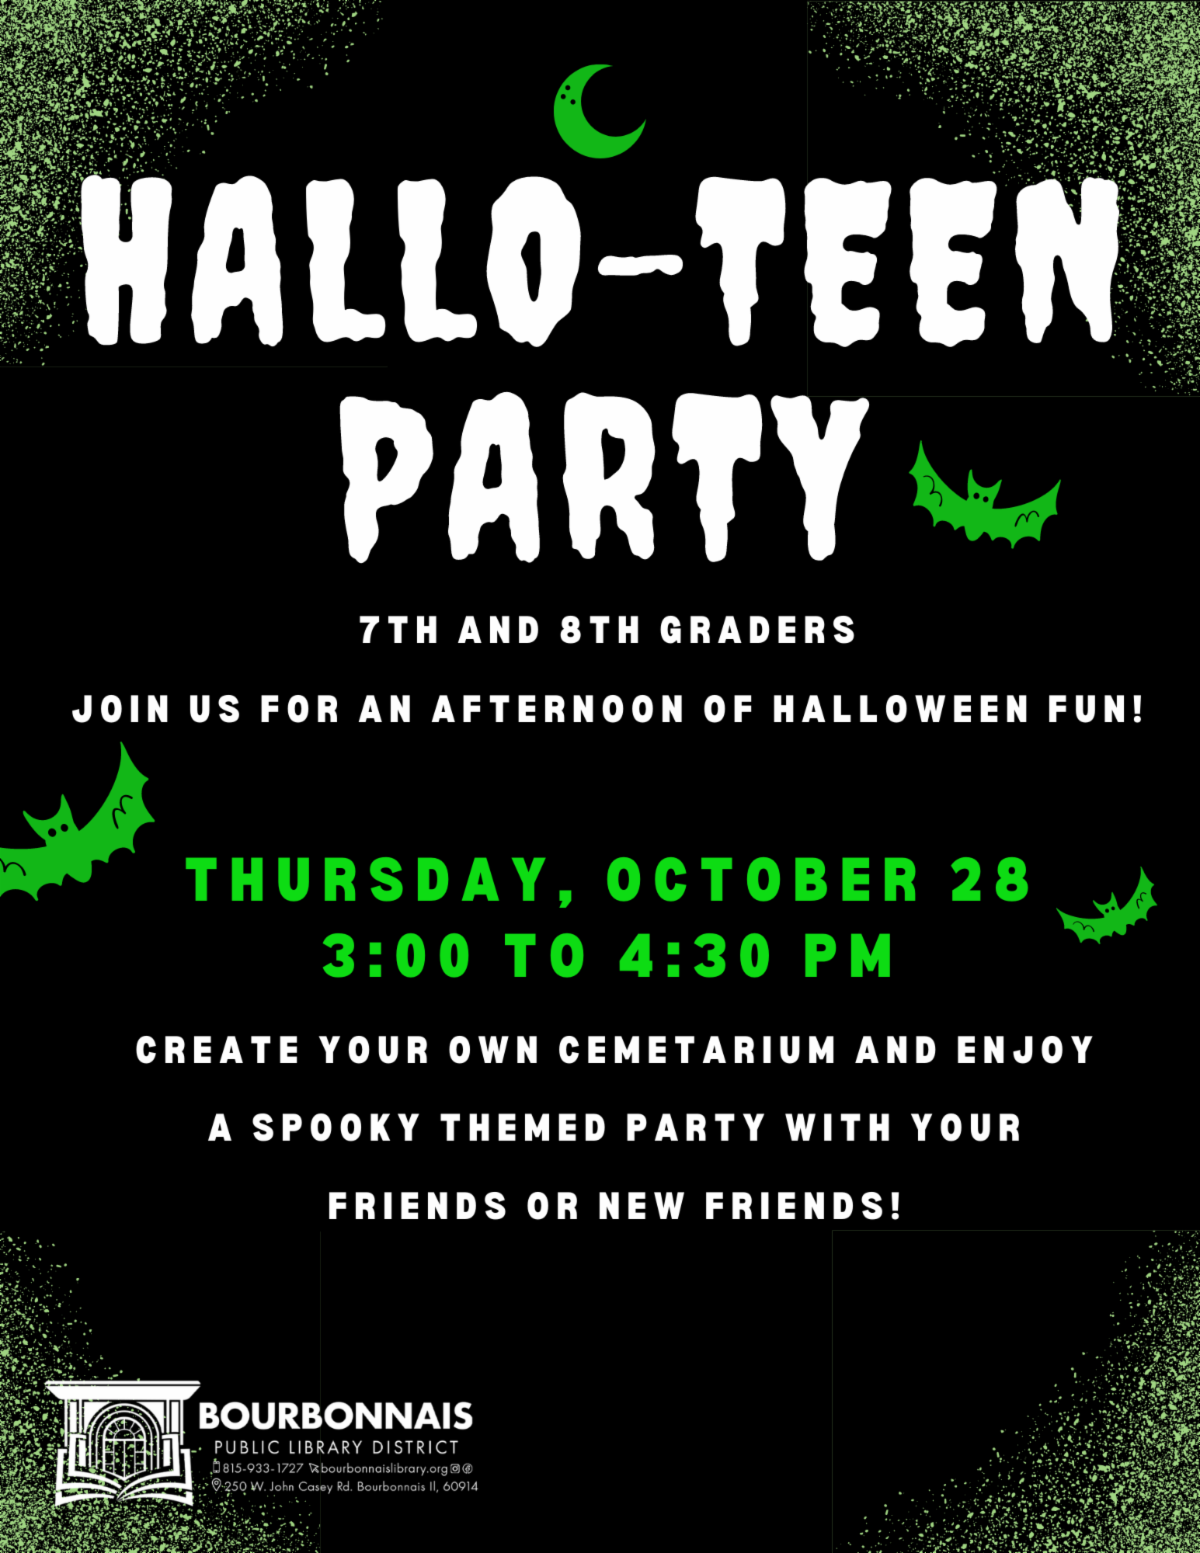 Hallow-teen Party